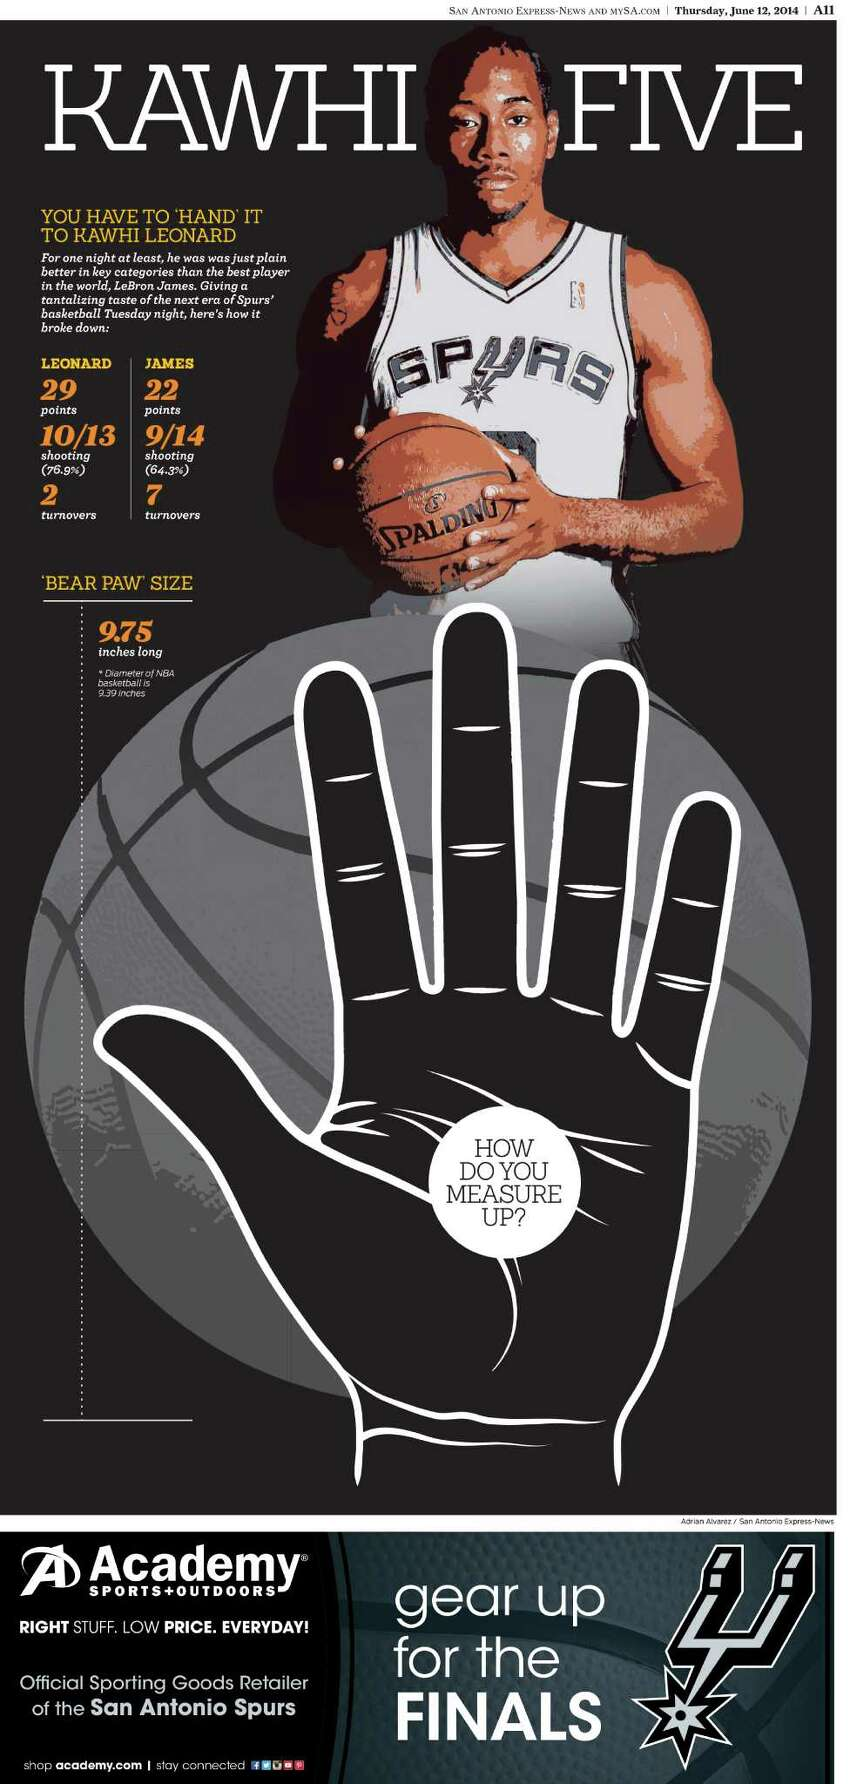 How does your hand measure up? Compare them using the poster in Thursday's Express-News. Click here to download it. Post your photos on our Facebook page or on Twitter with #mySA.